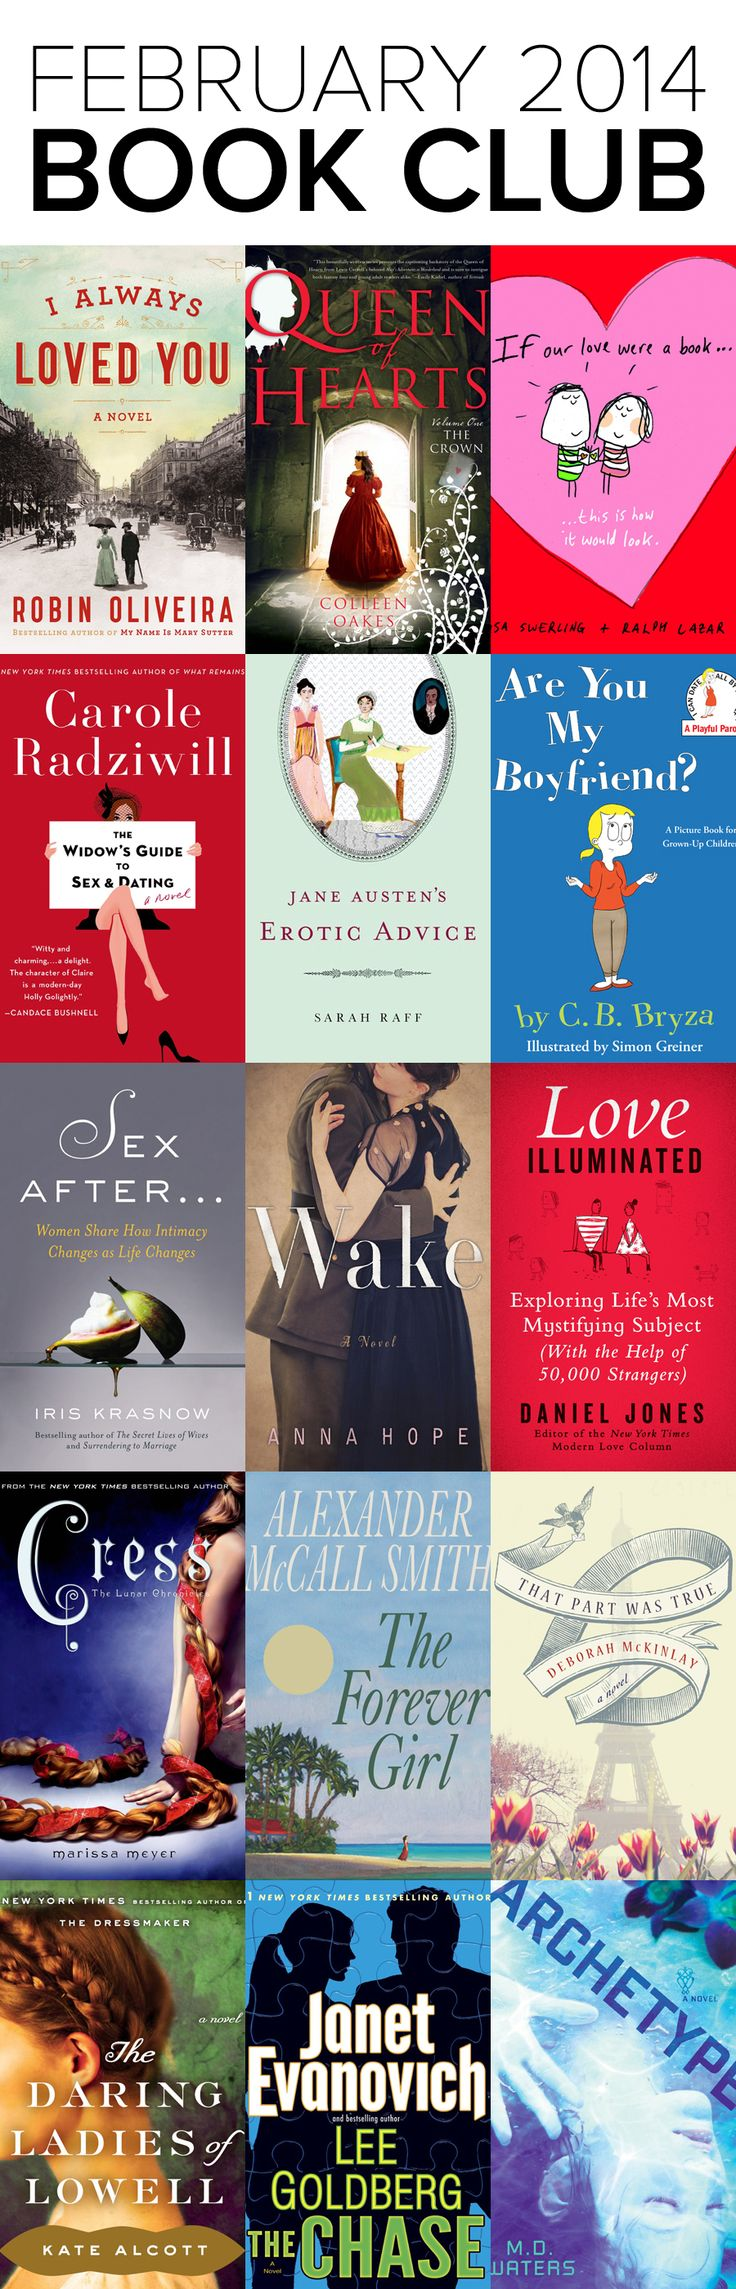 Book Club: see the new books out in February 2014! #books #bookclub